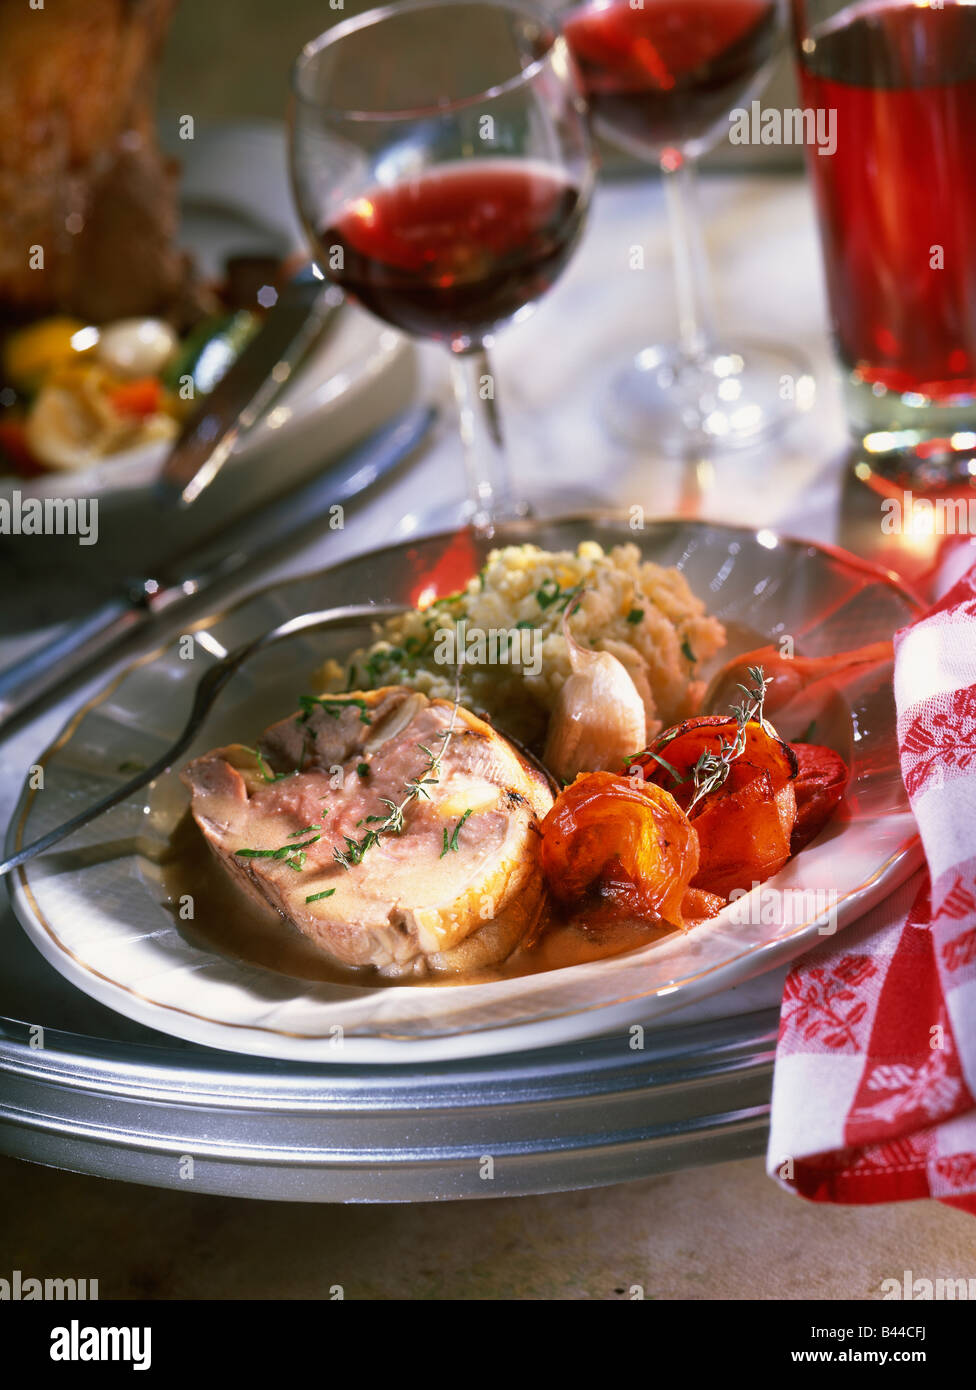 Lamb's leg studded with almonds and traditional mashed potatoes - Stock Image